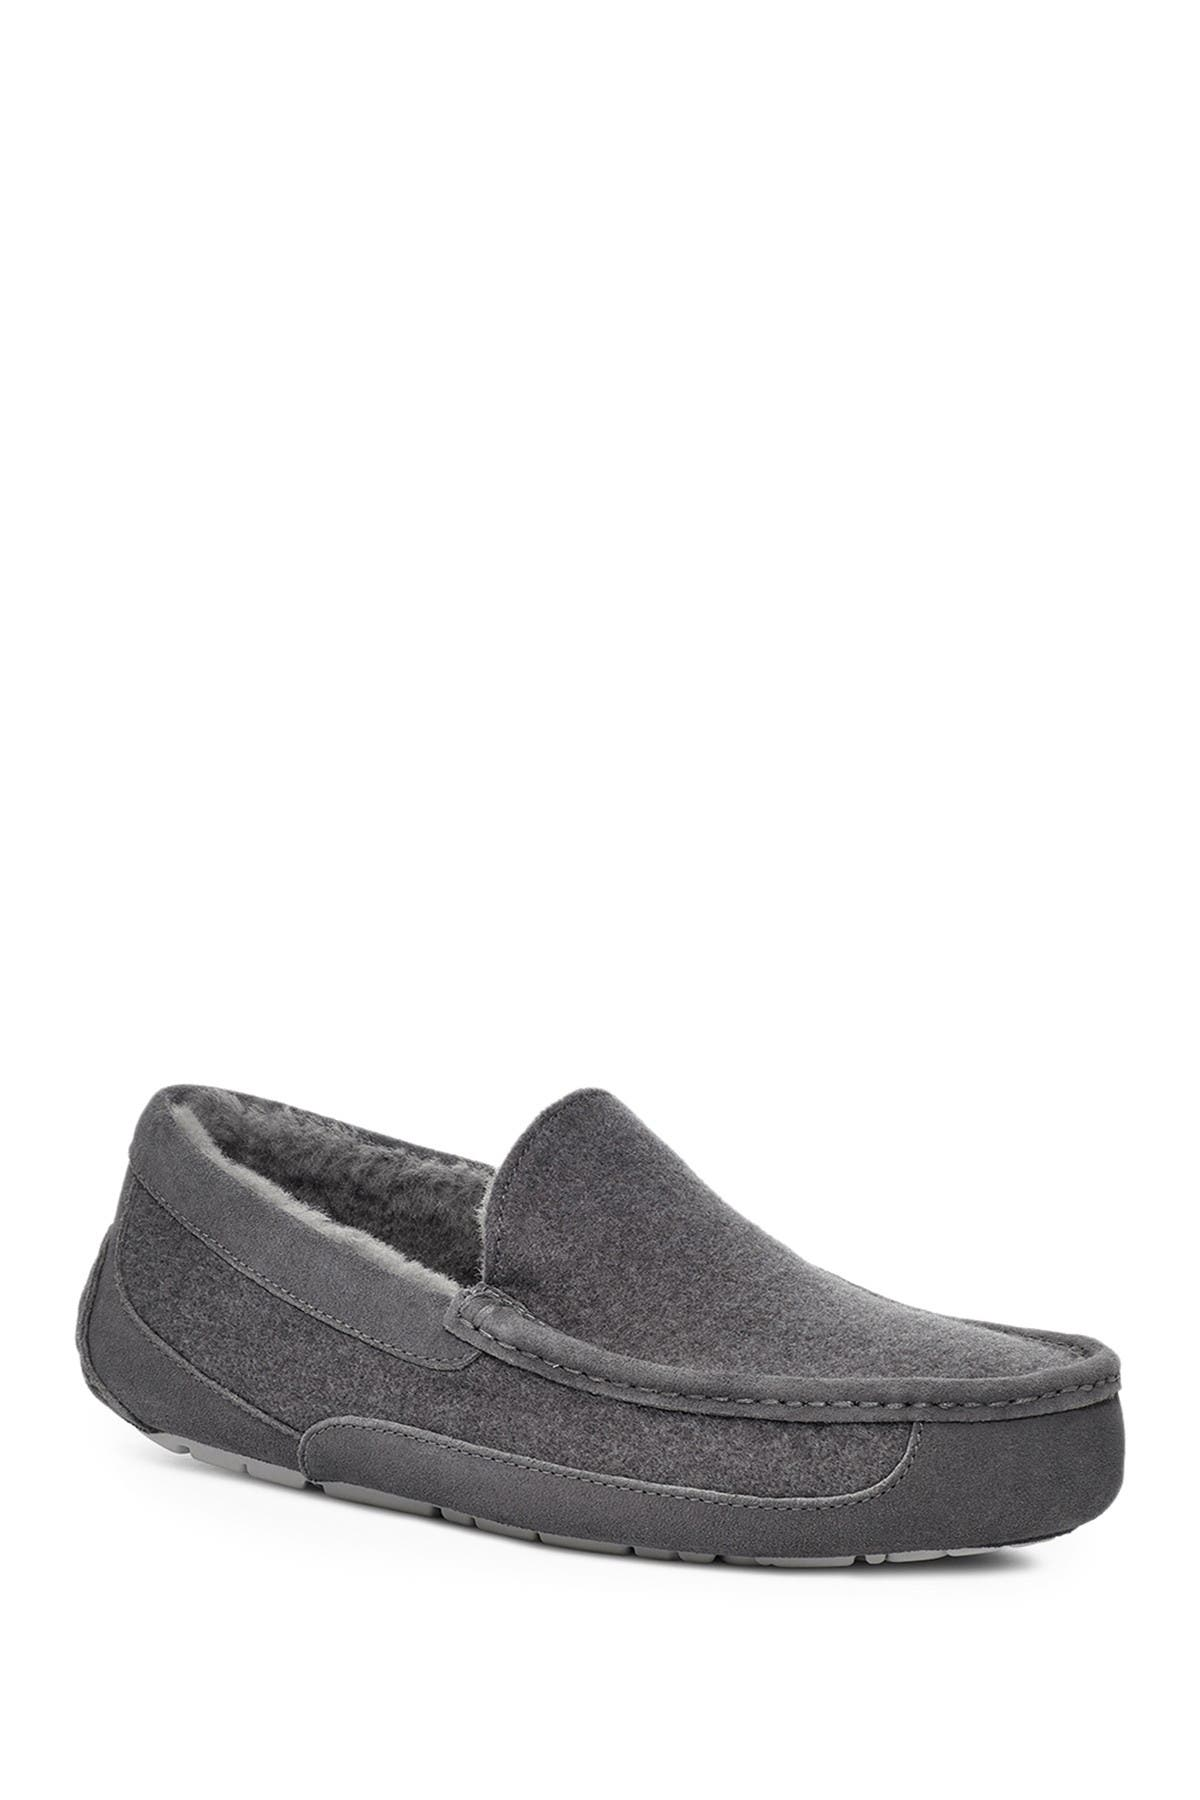 Image of UGG Ascot UGGpure™ Lined Slipper